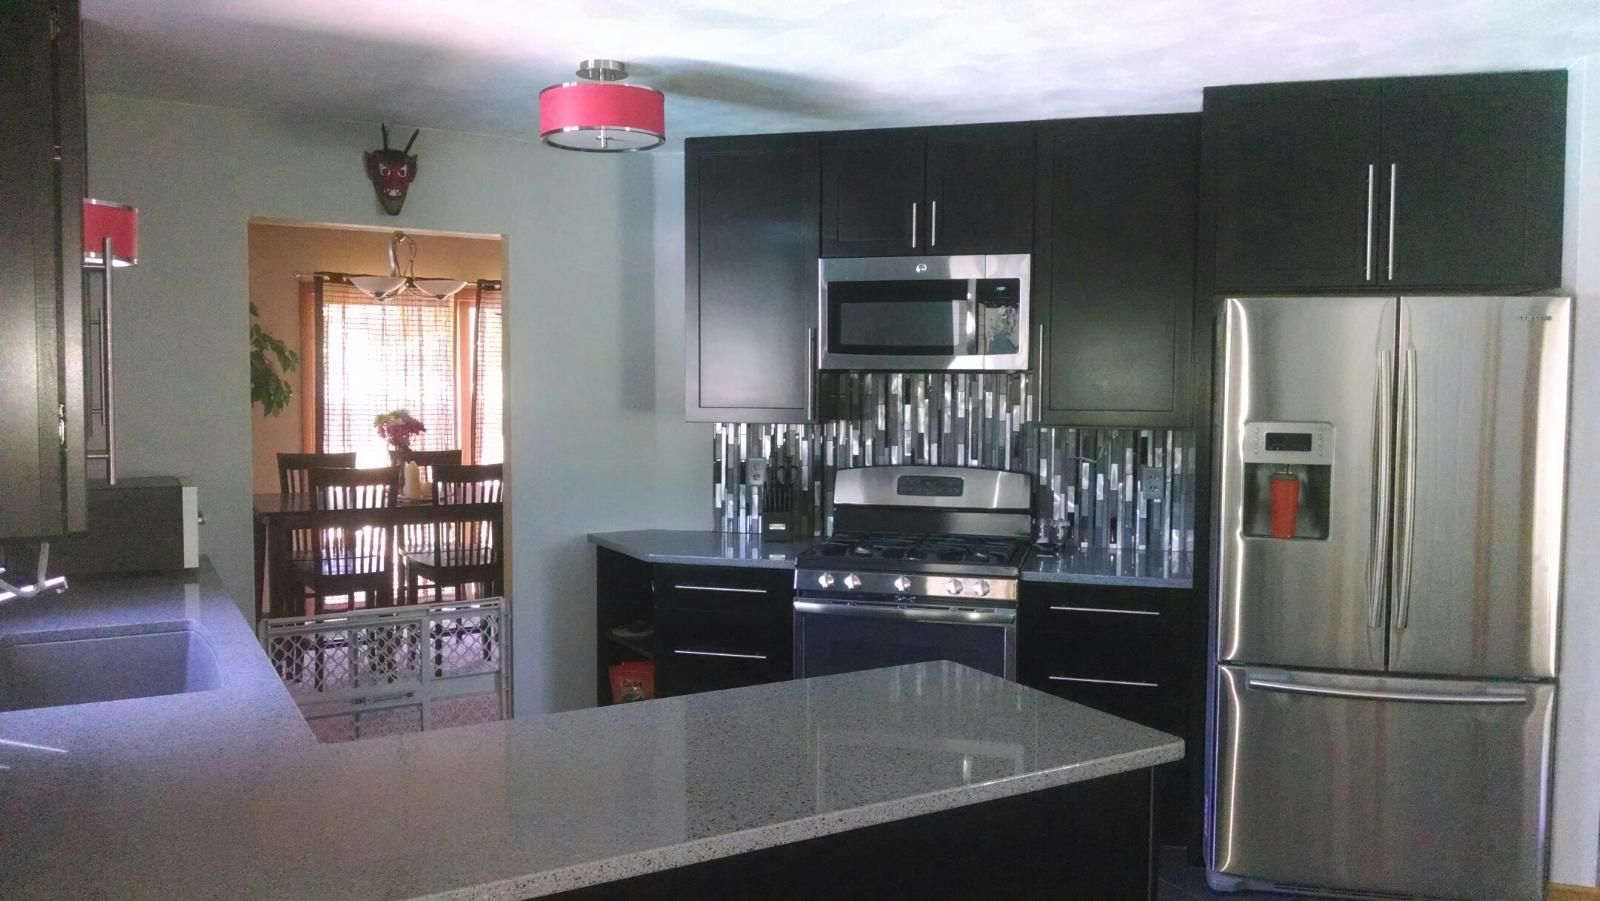 Waypoint Cabinetry Glazzio Glass Stainless Back Splash Silestone Countertops Midwest Stone So Custom Kitchen Remodel Silestone Countertops Kitchen Design